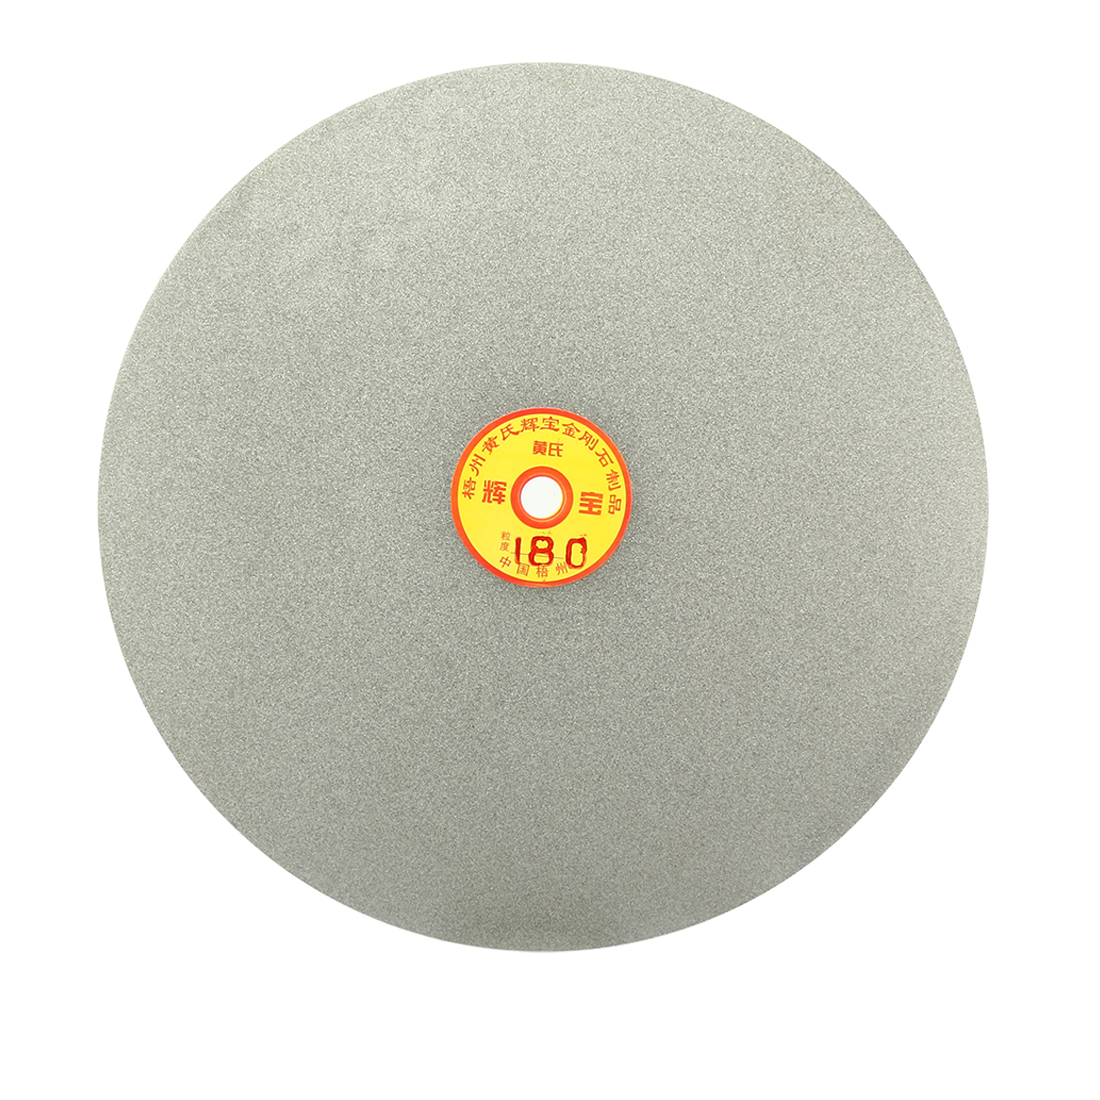 250mm 10-inch Grit 180 Diamond Coated Flat Lap Disk Wheel Grinding Sanding Disc